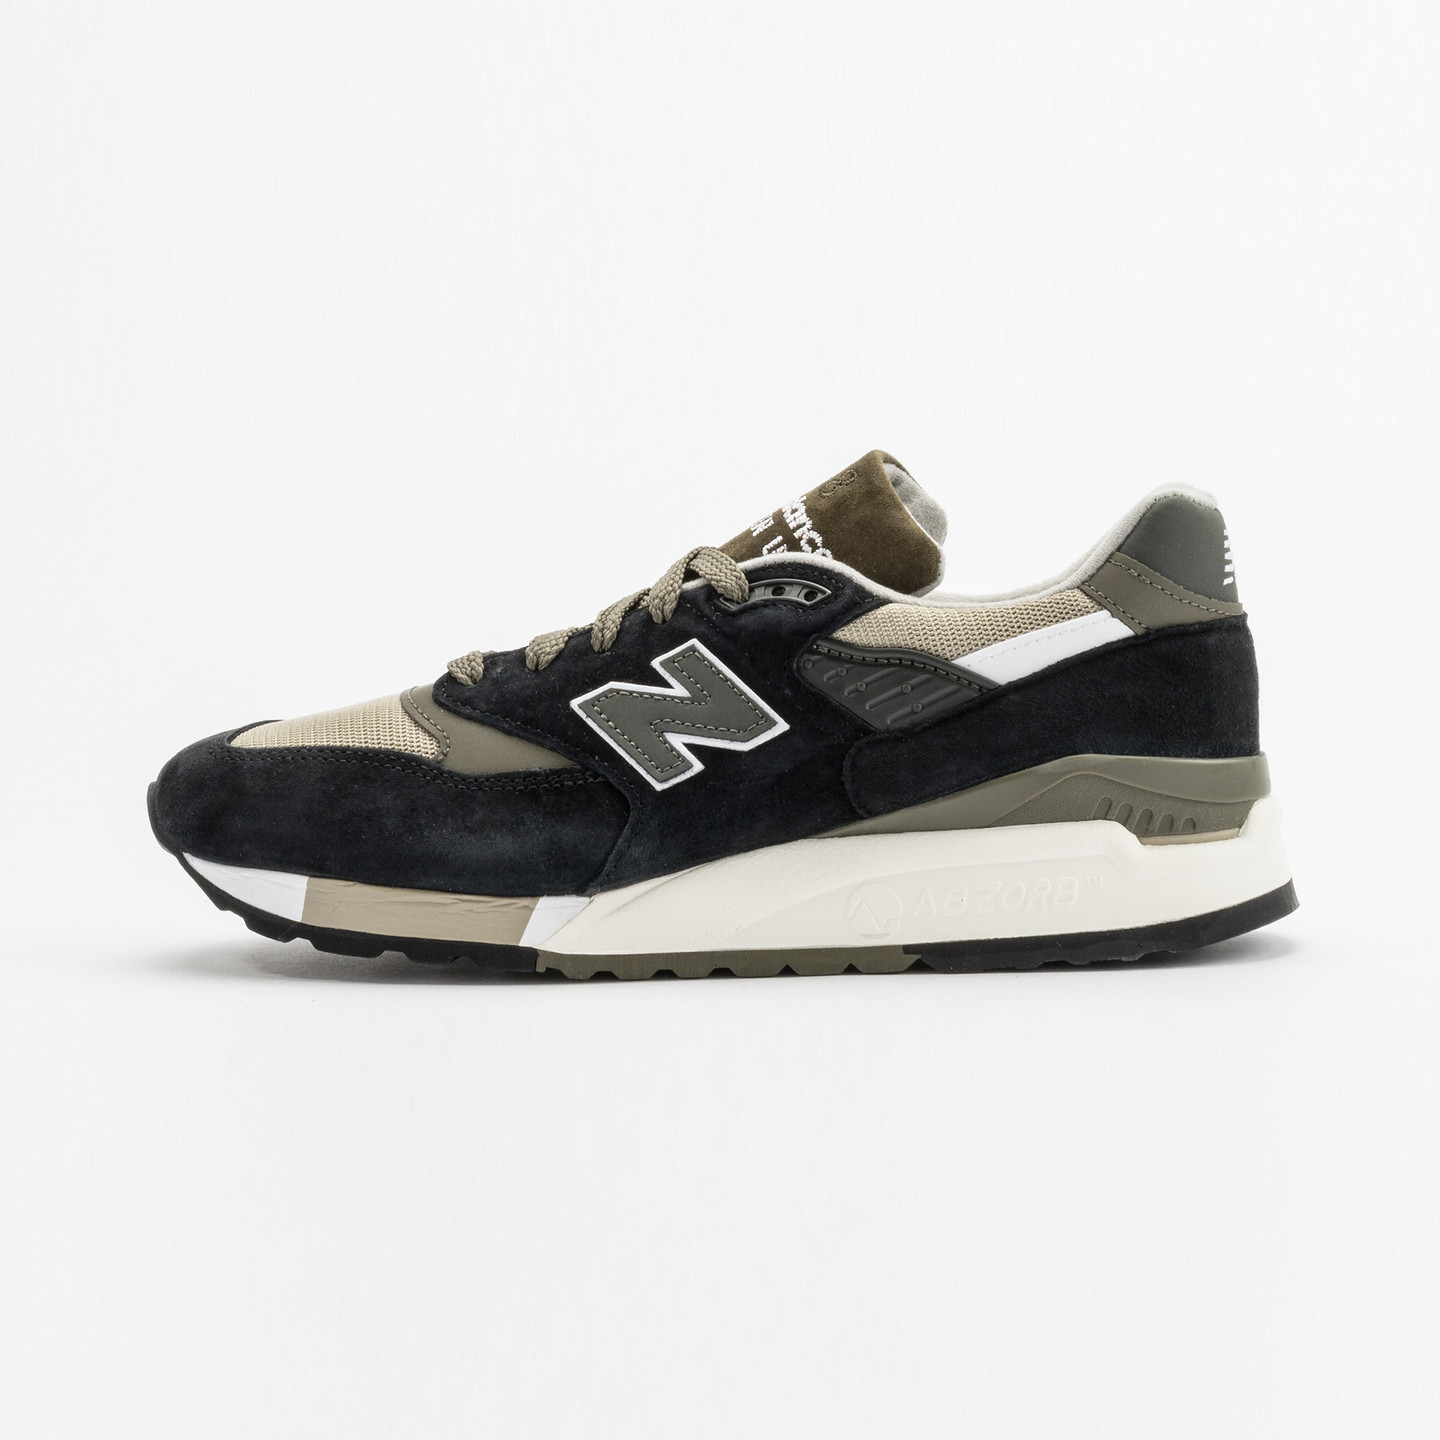 New Balance M998 Made in USA Olive / Black M998CTR